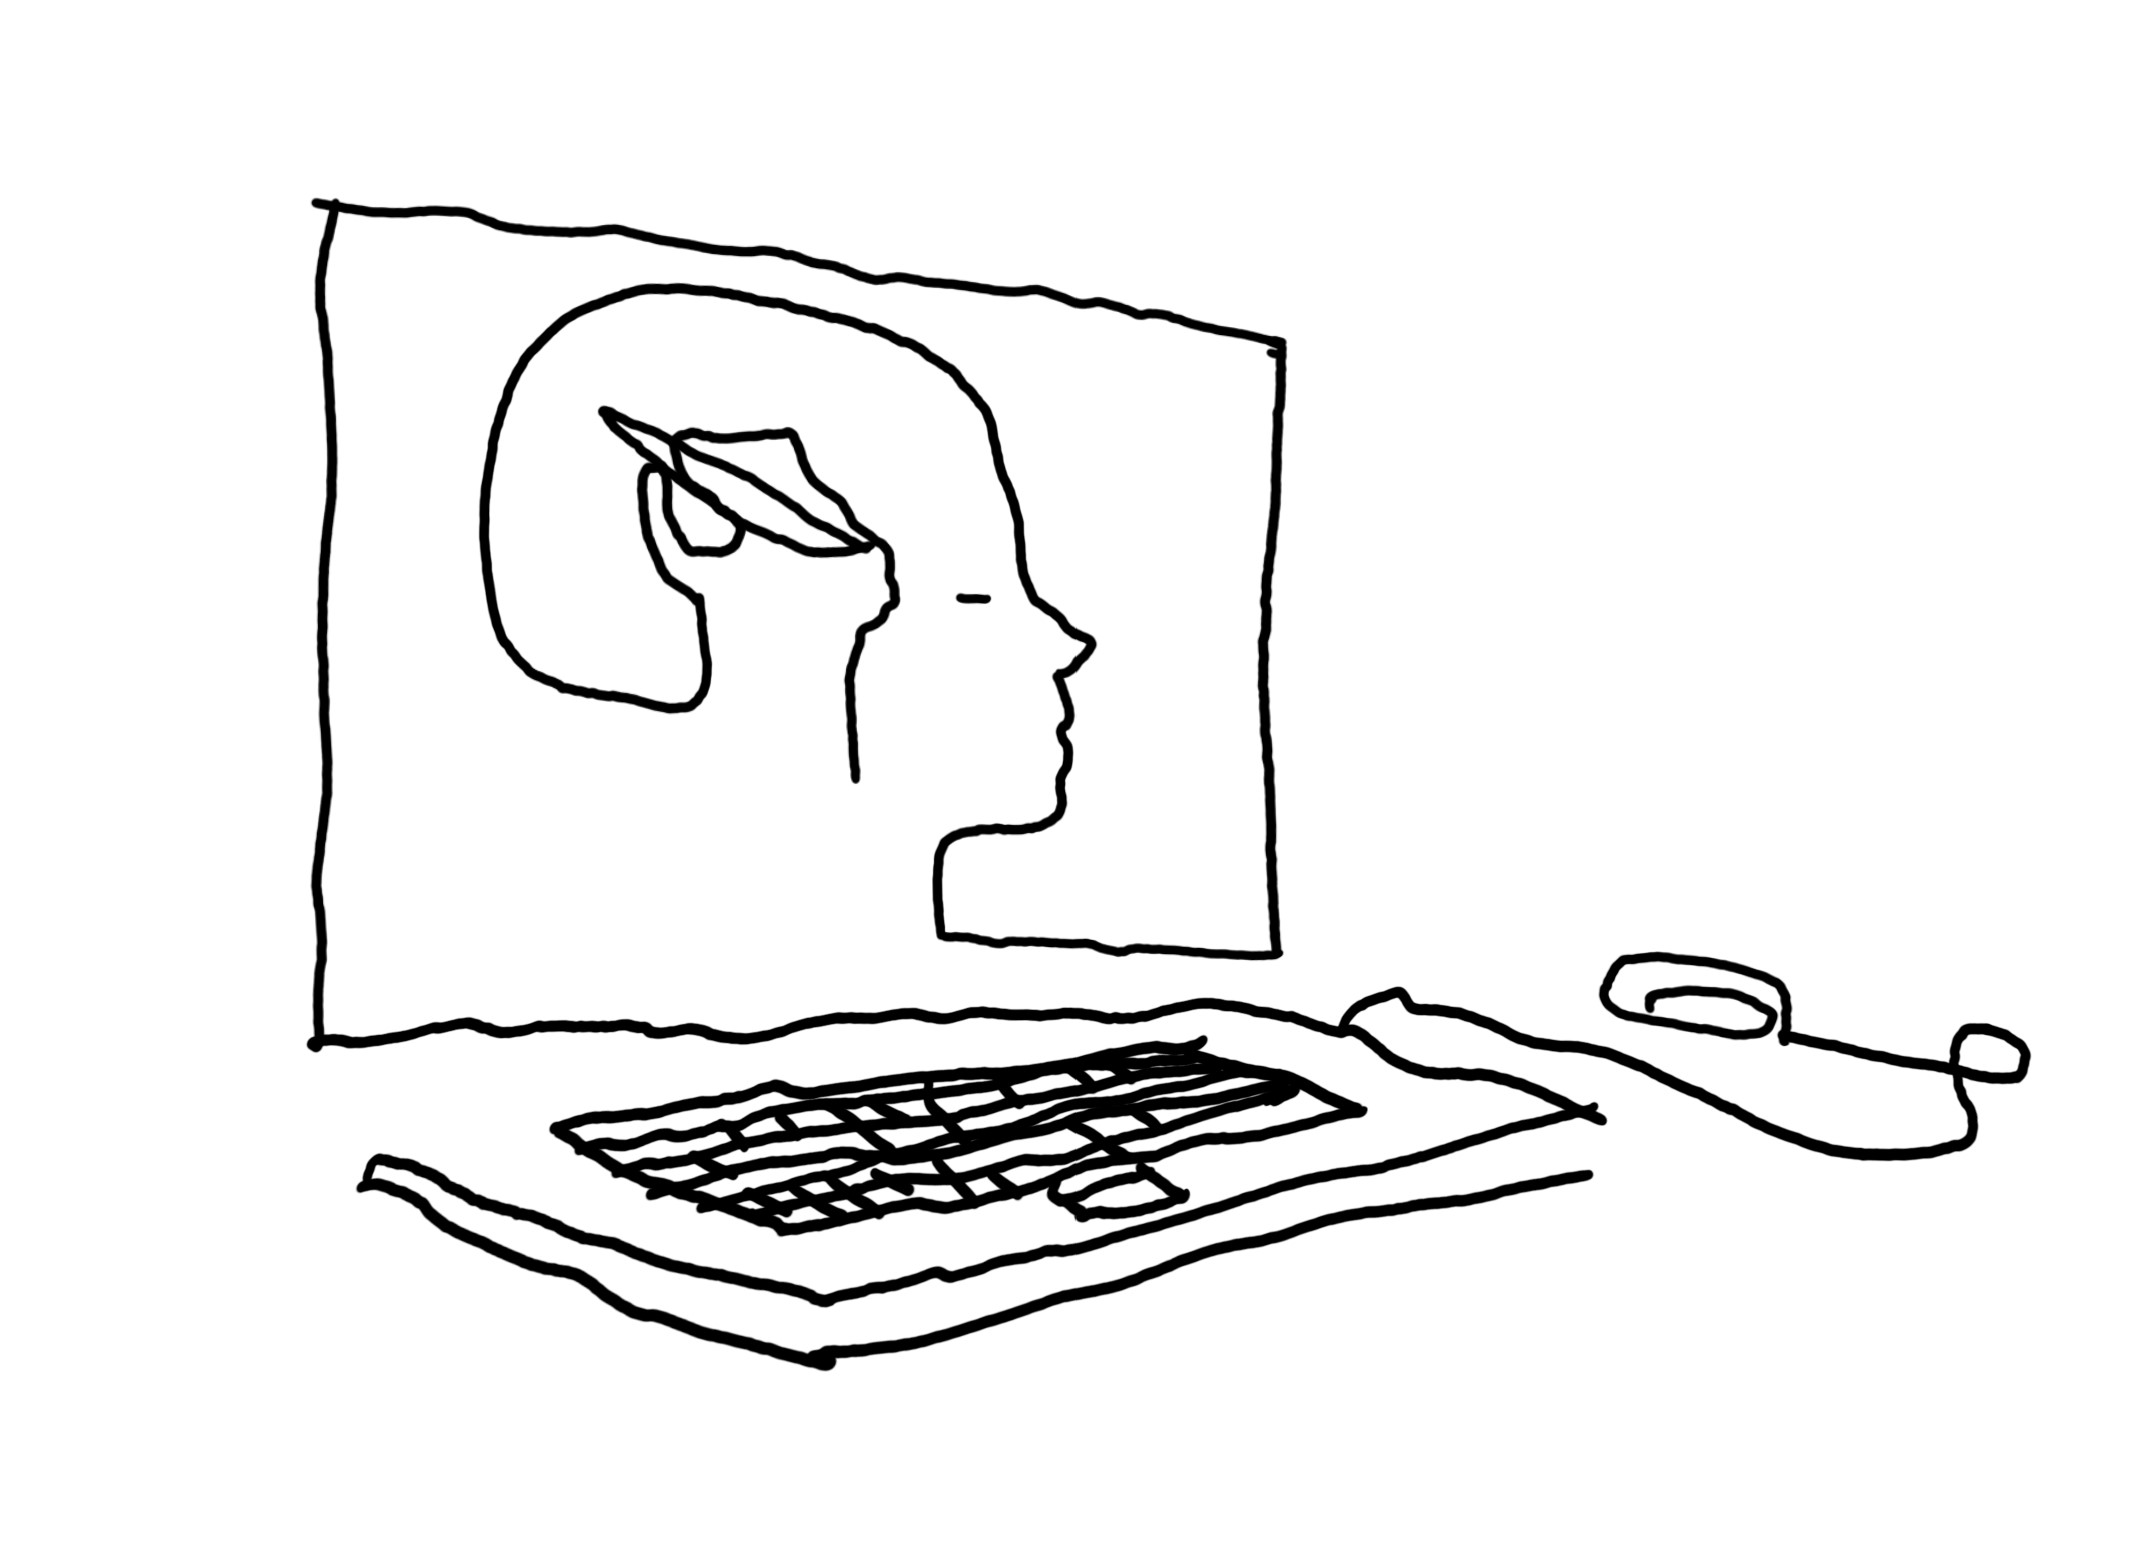 """Line drawing of a computer with a head and hand drawing to represent a """"mental canvas"""""""